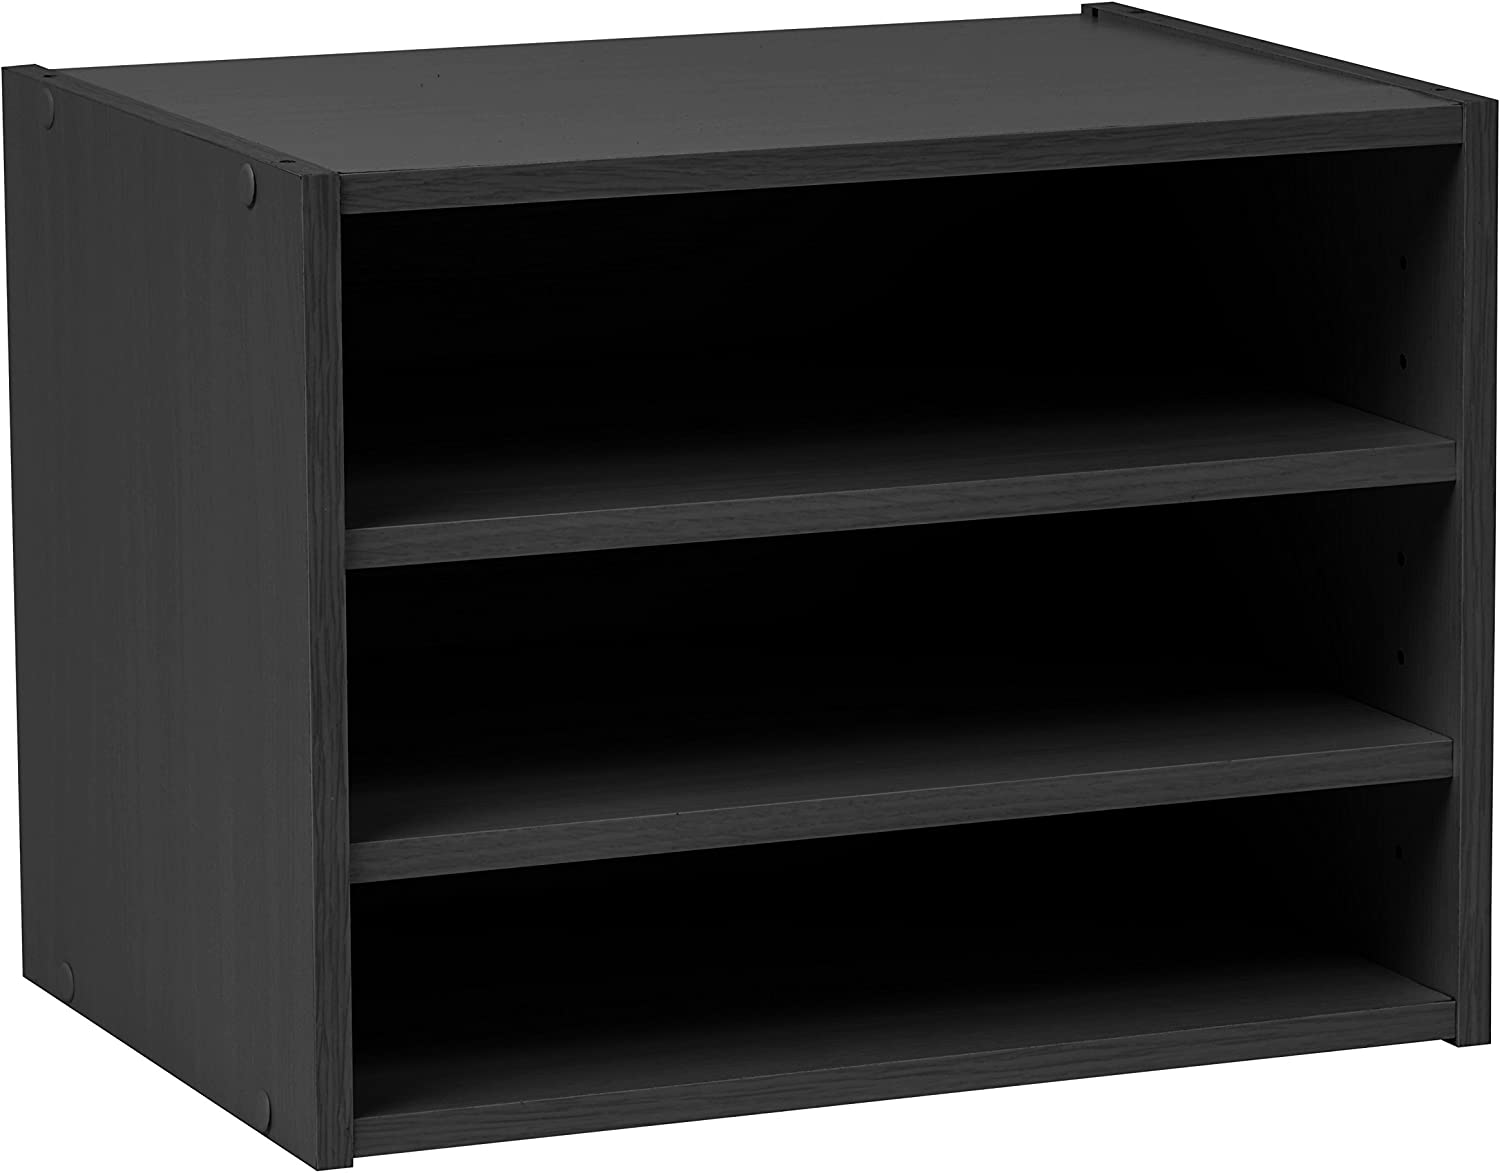 IRIS USA, SBS BLACK, Modular Wood Storage Organizer Cube Box with Adjustable Shelves, Black, 1 Pack